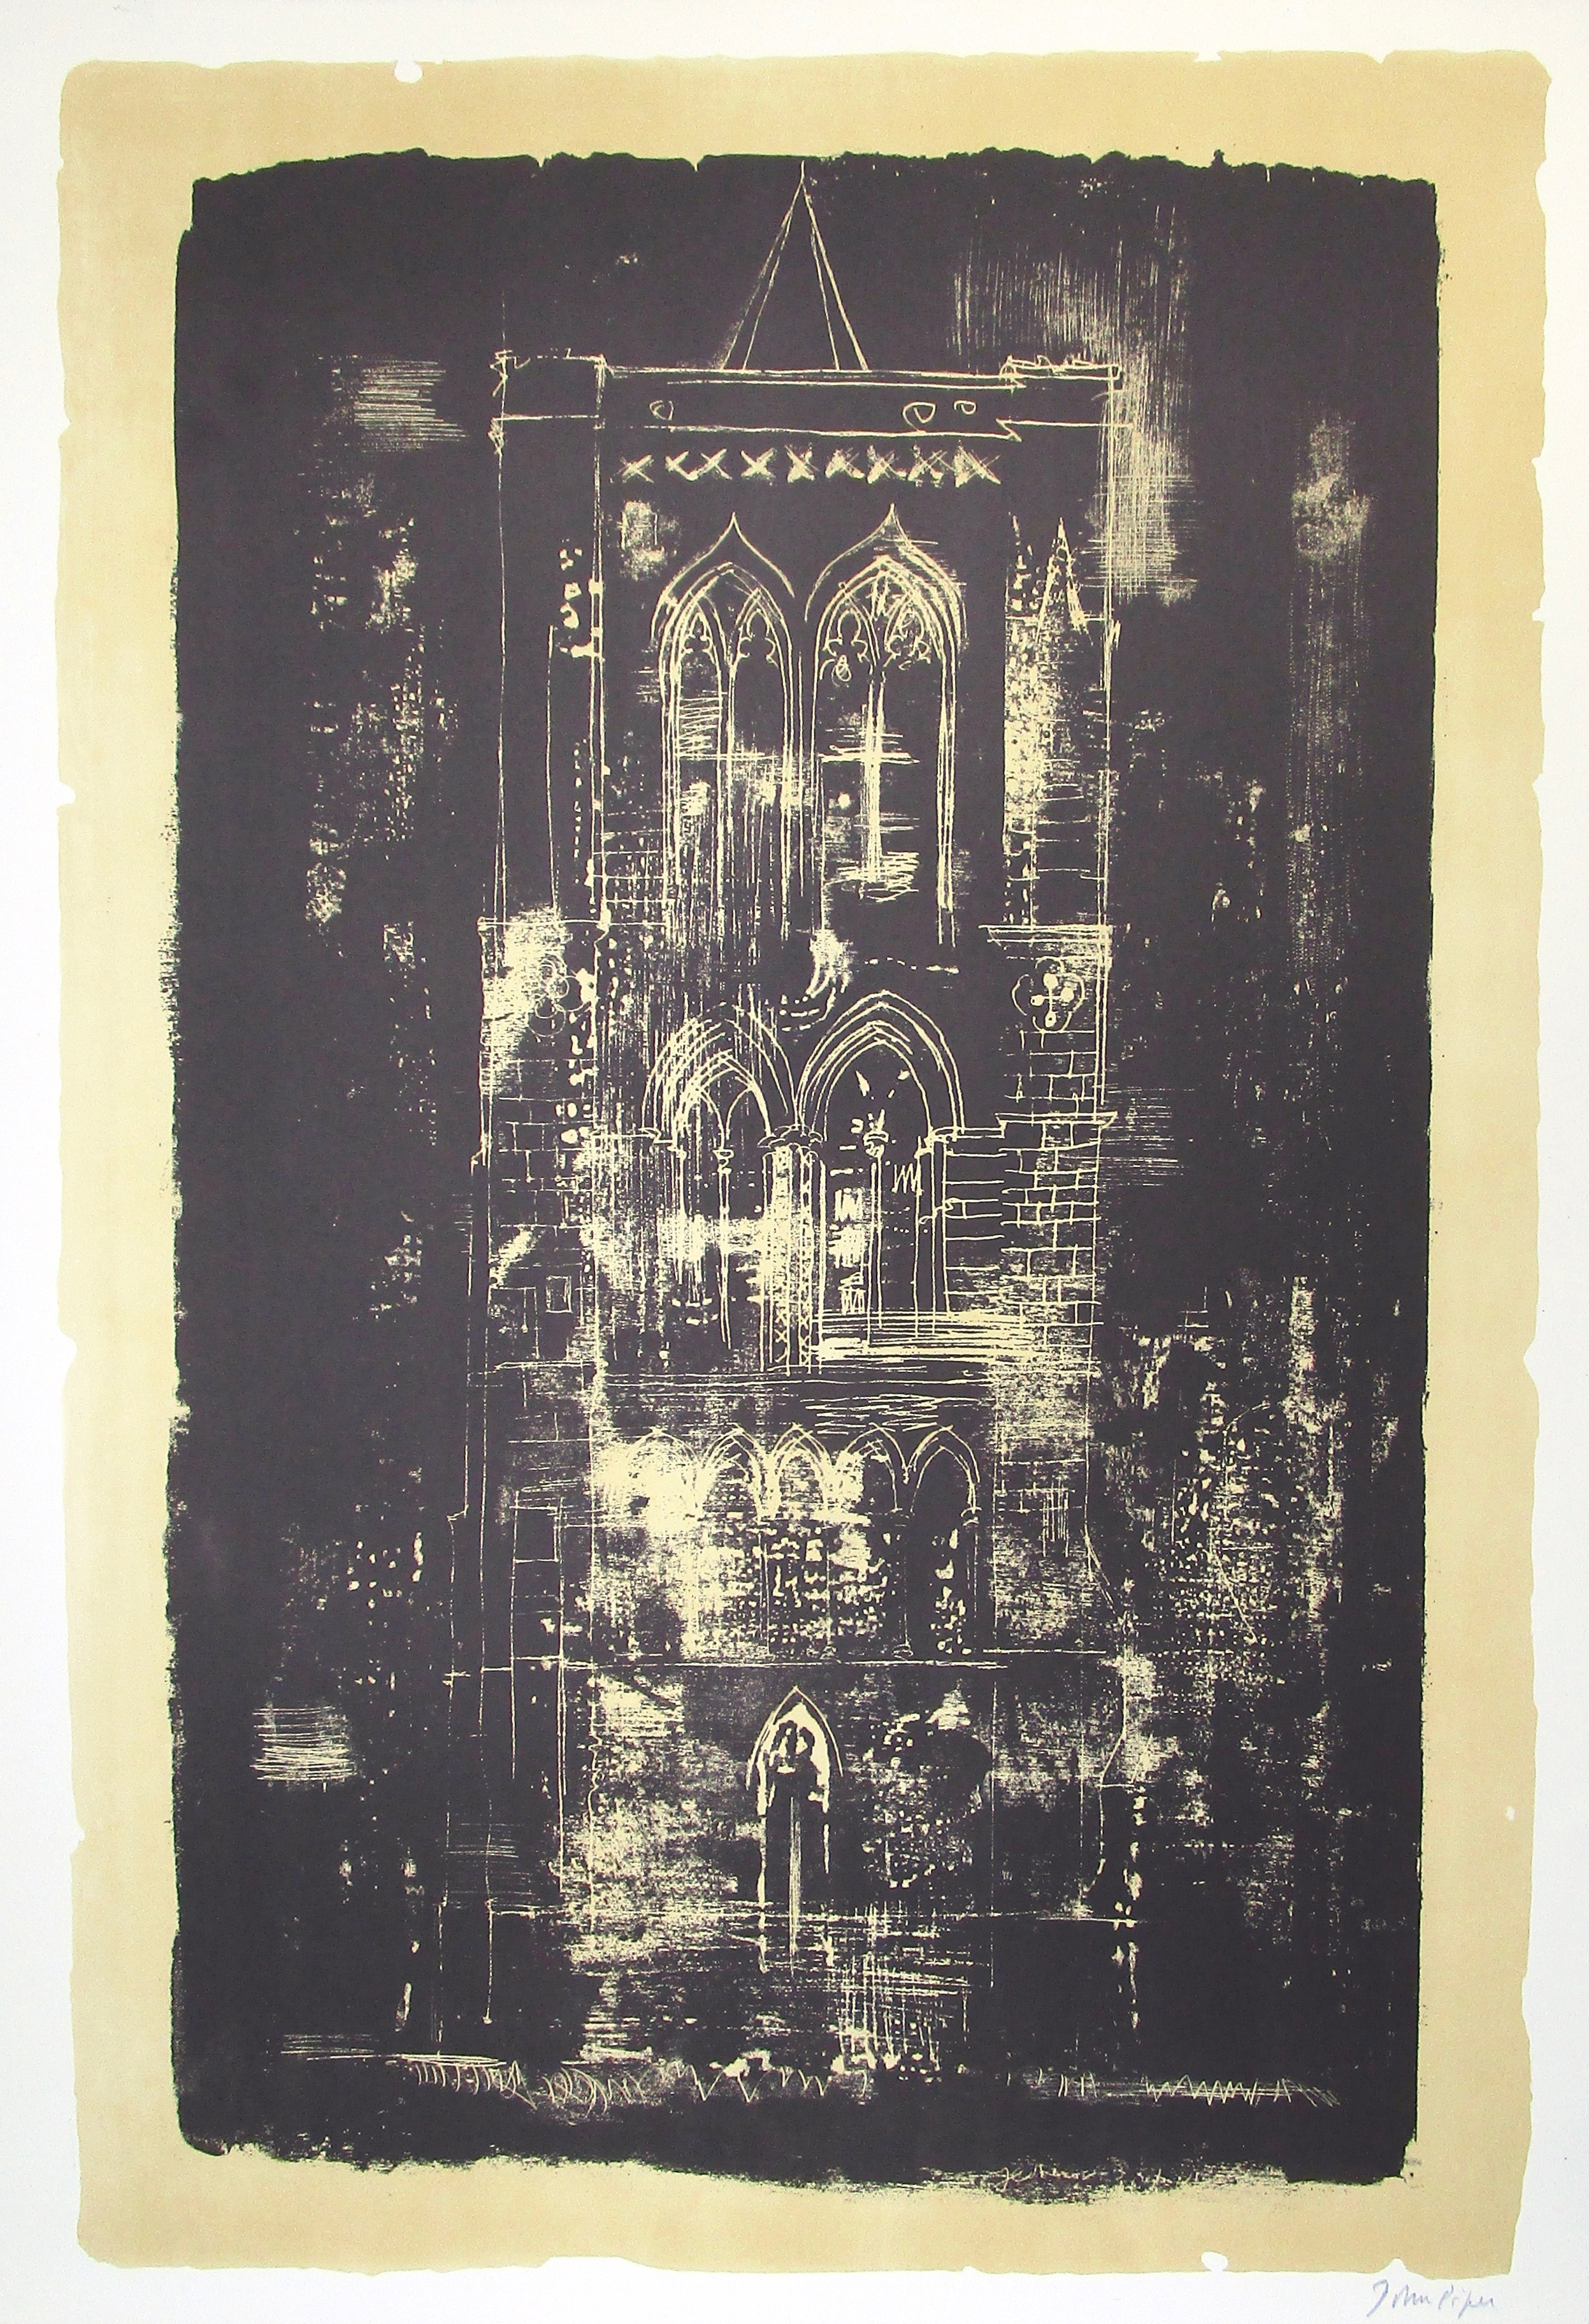 JOHN PIPER CH [1903-1992]. Gedney, Lincolnshire; a tower in the Fens, 1964. Lithograph on handmade